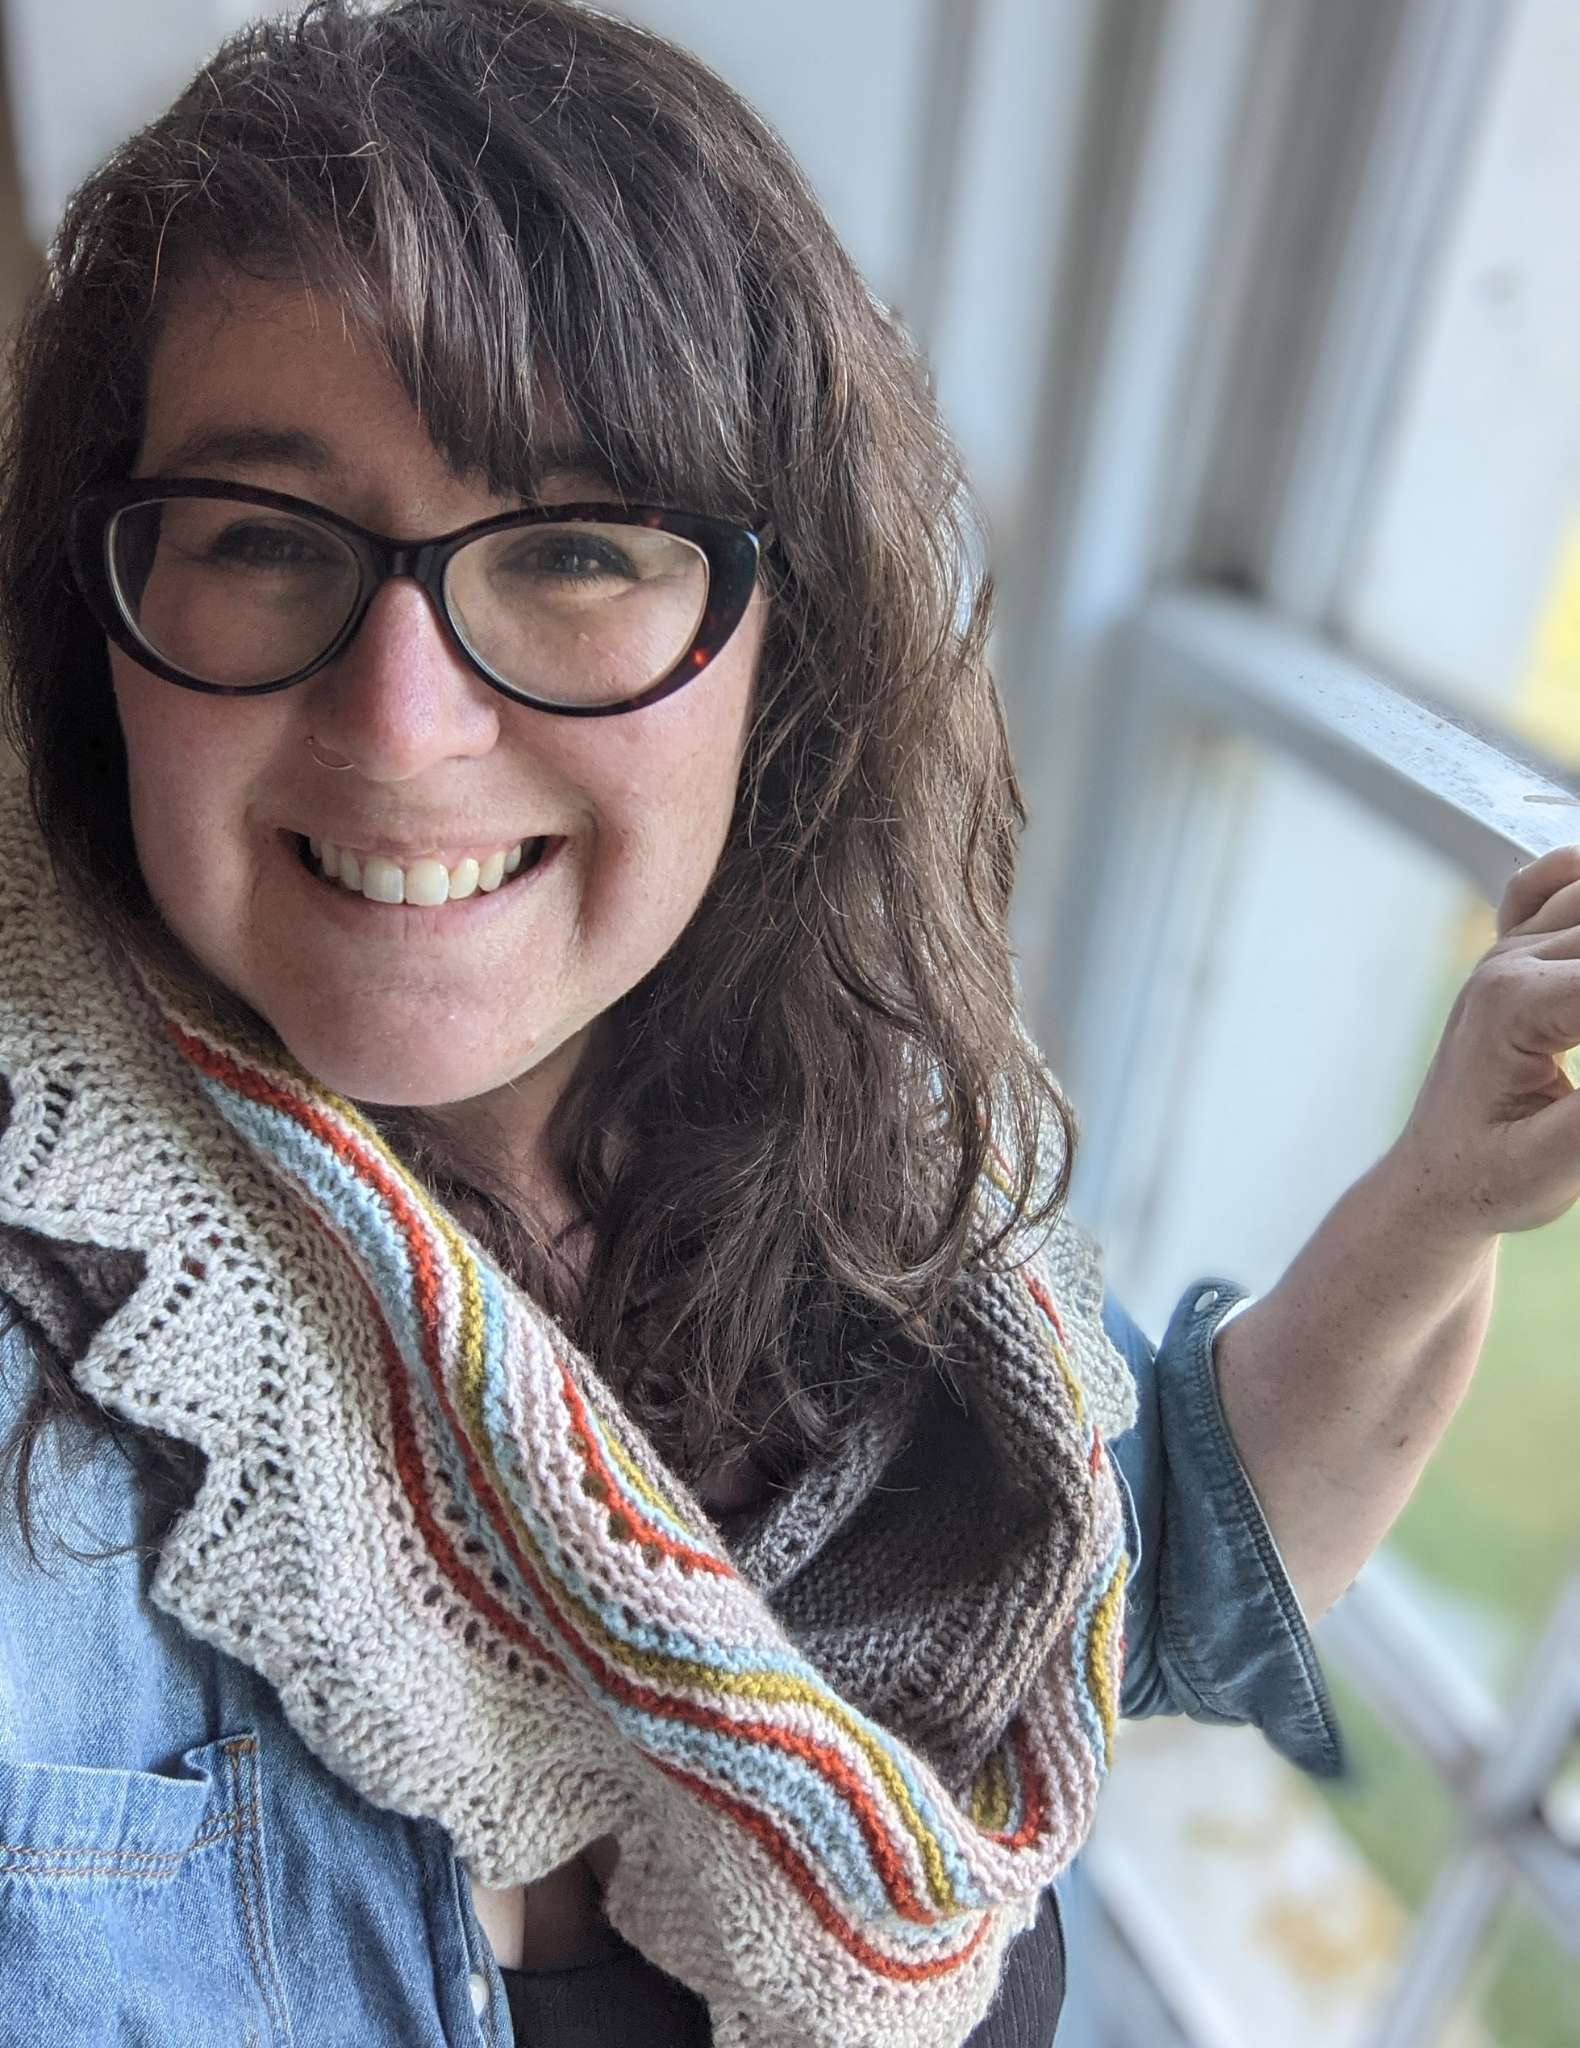 A white woman with long wavy hair and glasses stands indoors in front of a window. She is smiling and wears a neutral shawl with brightly coloured stripes and a blue shirt.